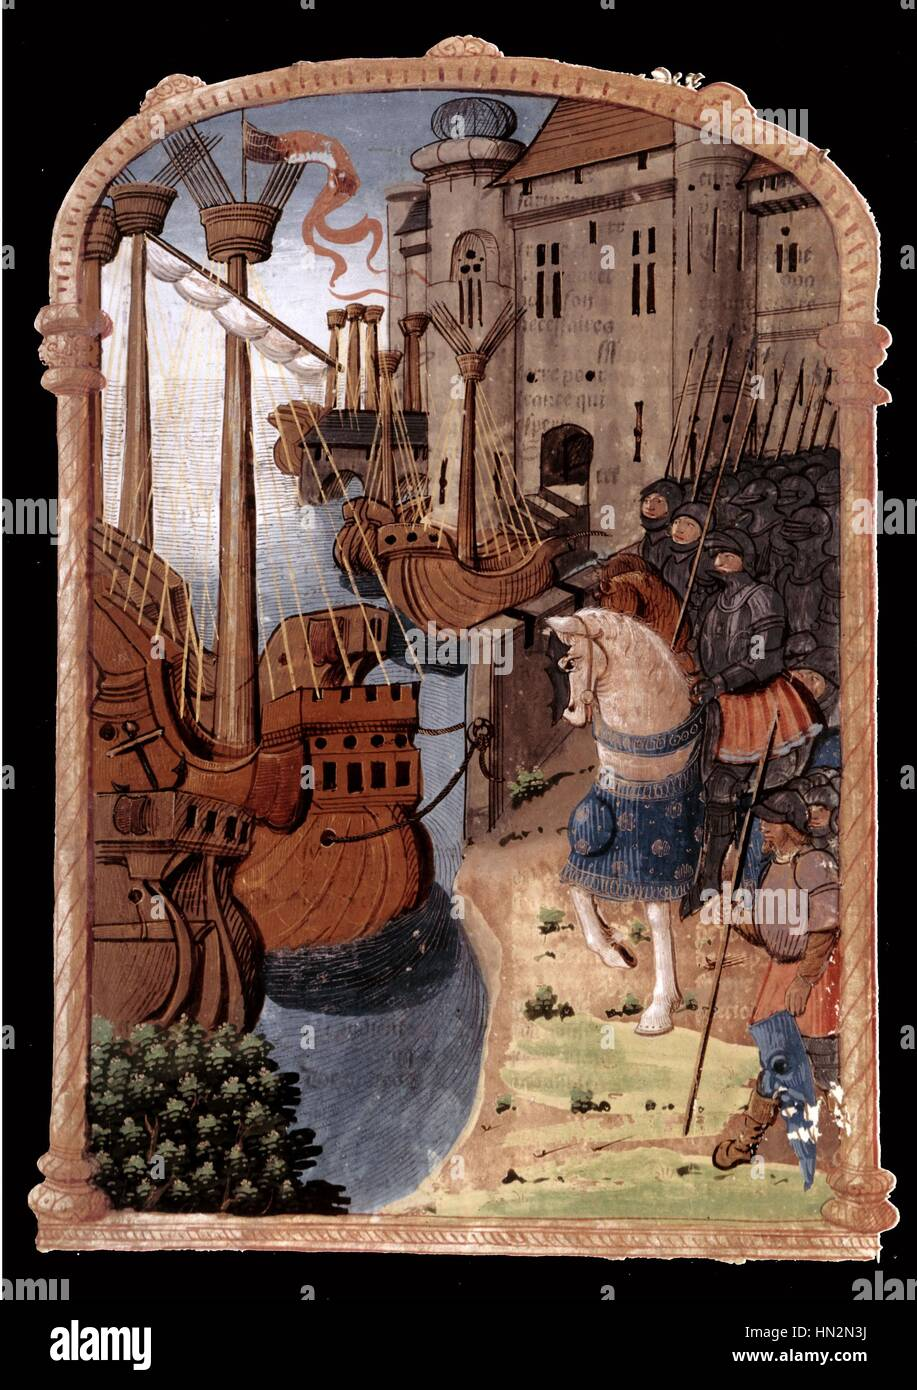 Chronicles of Jean Froissart (c.1337-c.1400): Hundred Years War, landing France, 14th century Paris - Bibliotheque - Stock Image